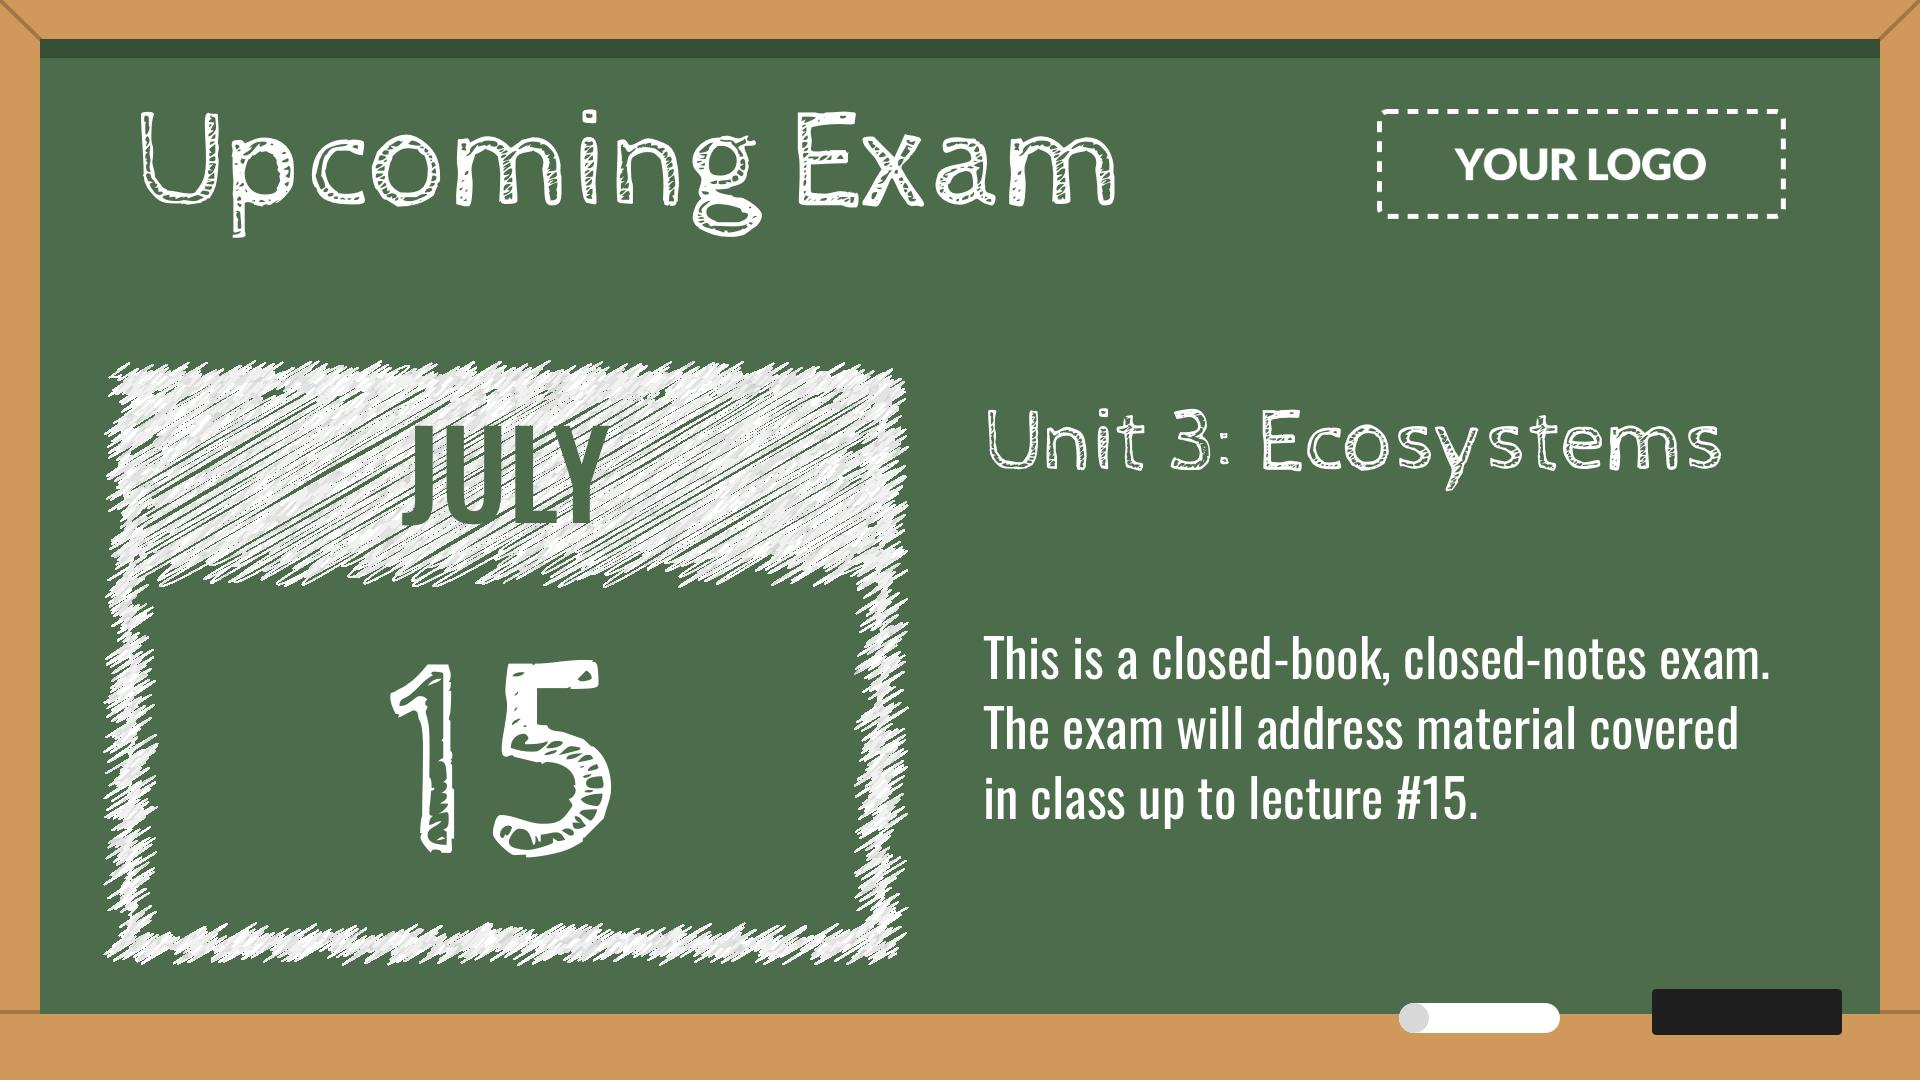 Upcoming Exam Digital Signage Template